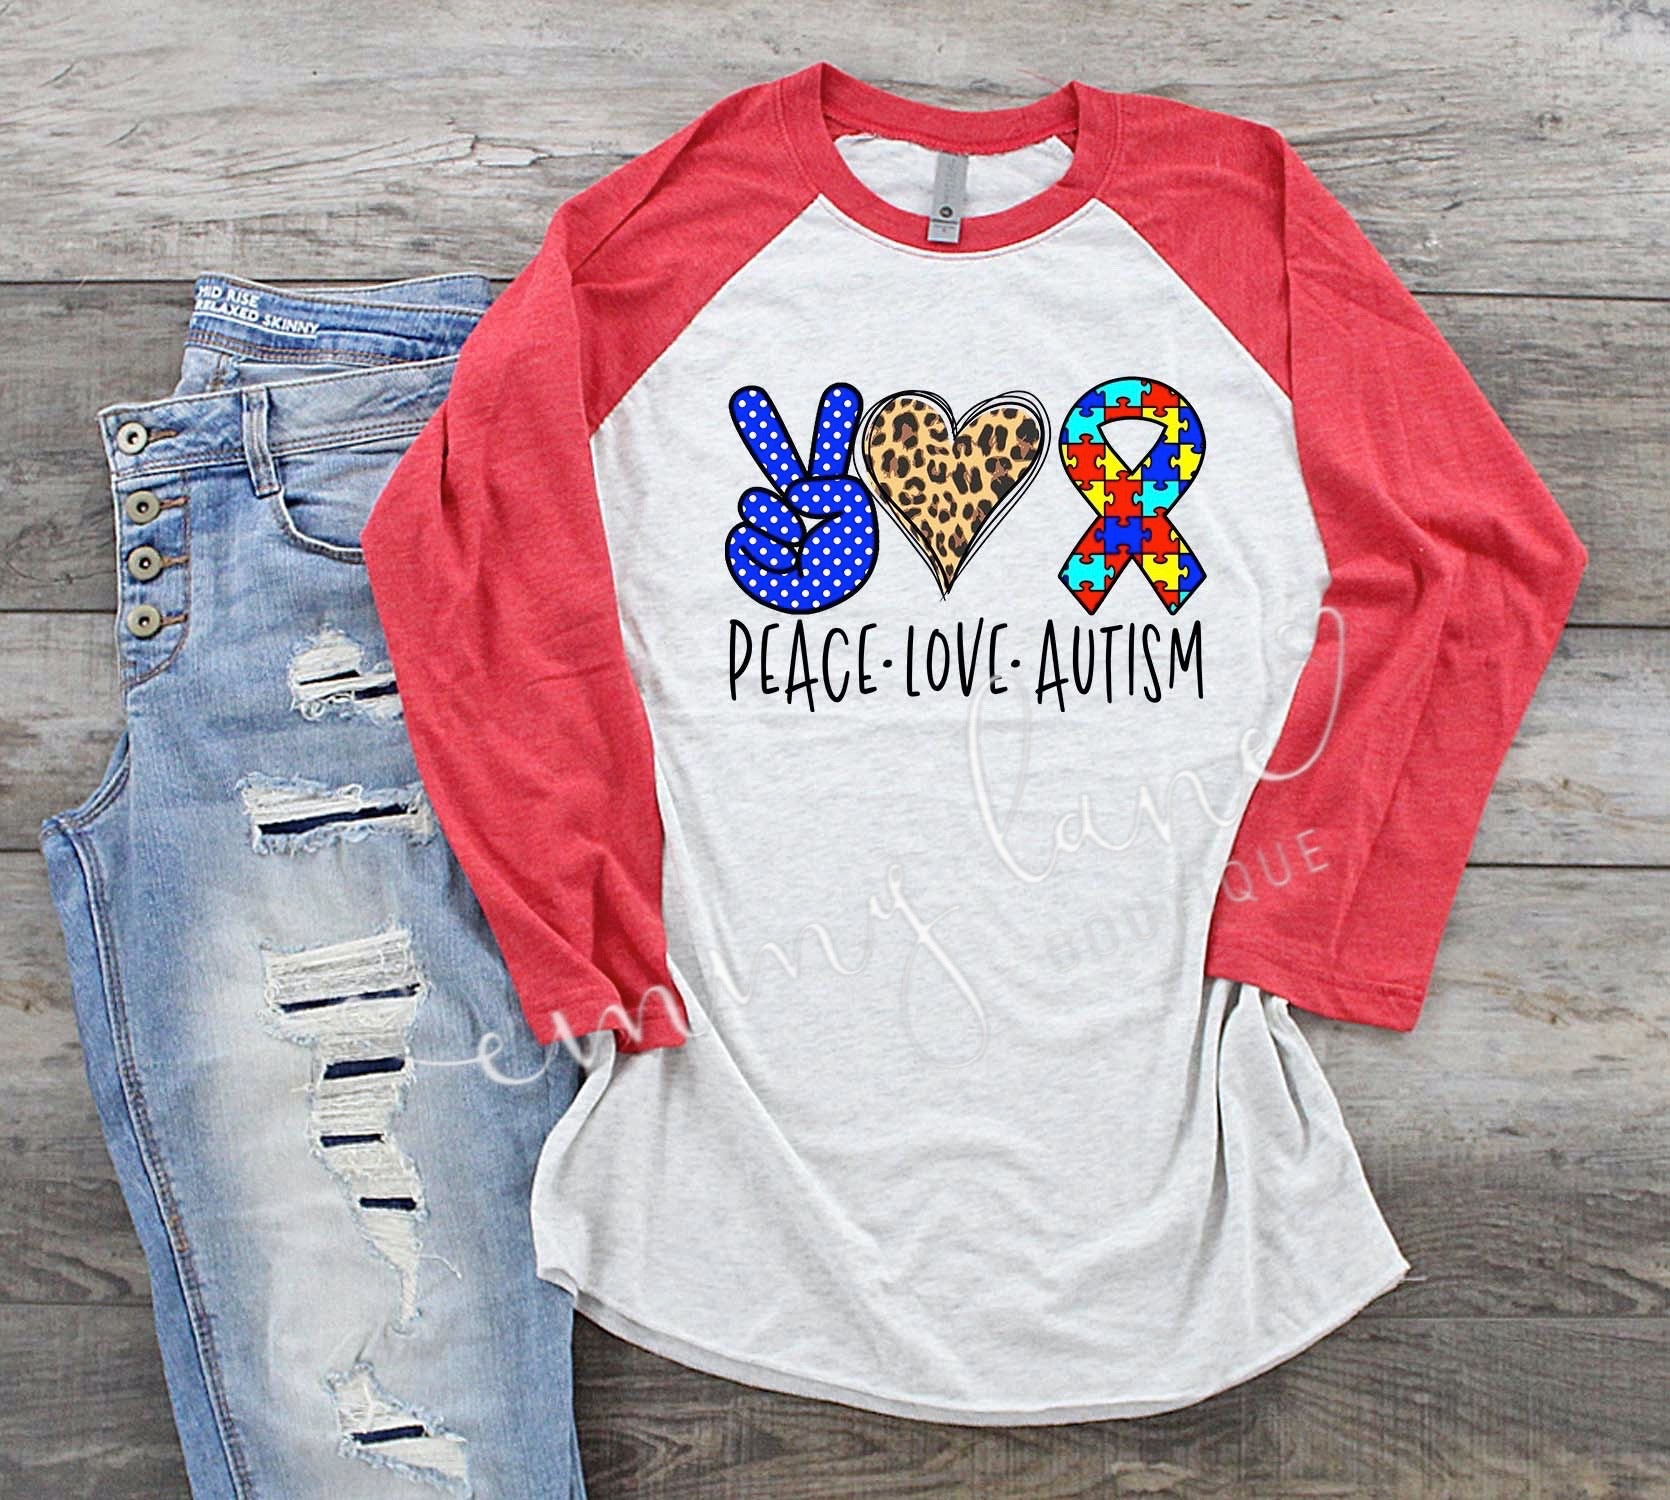 Peace - Love - Autism